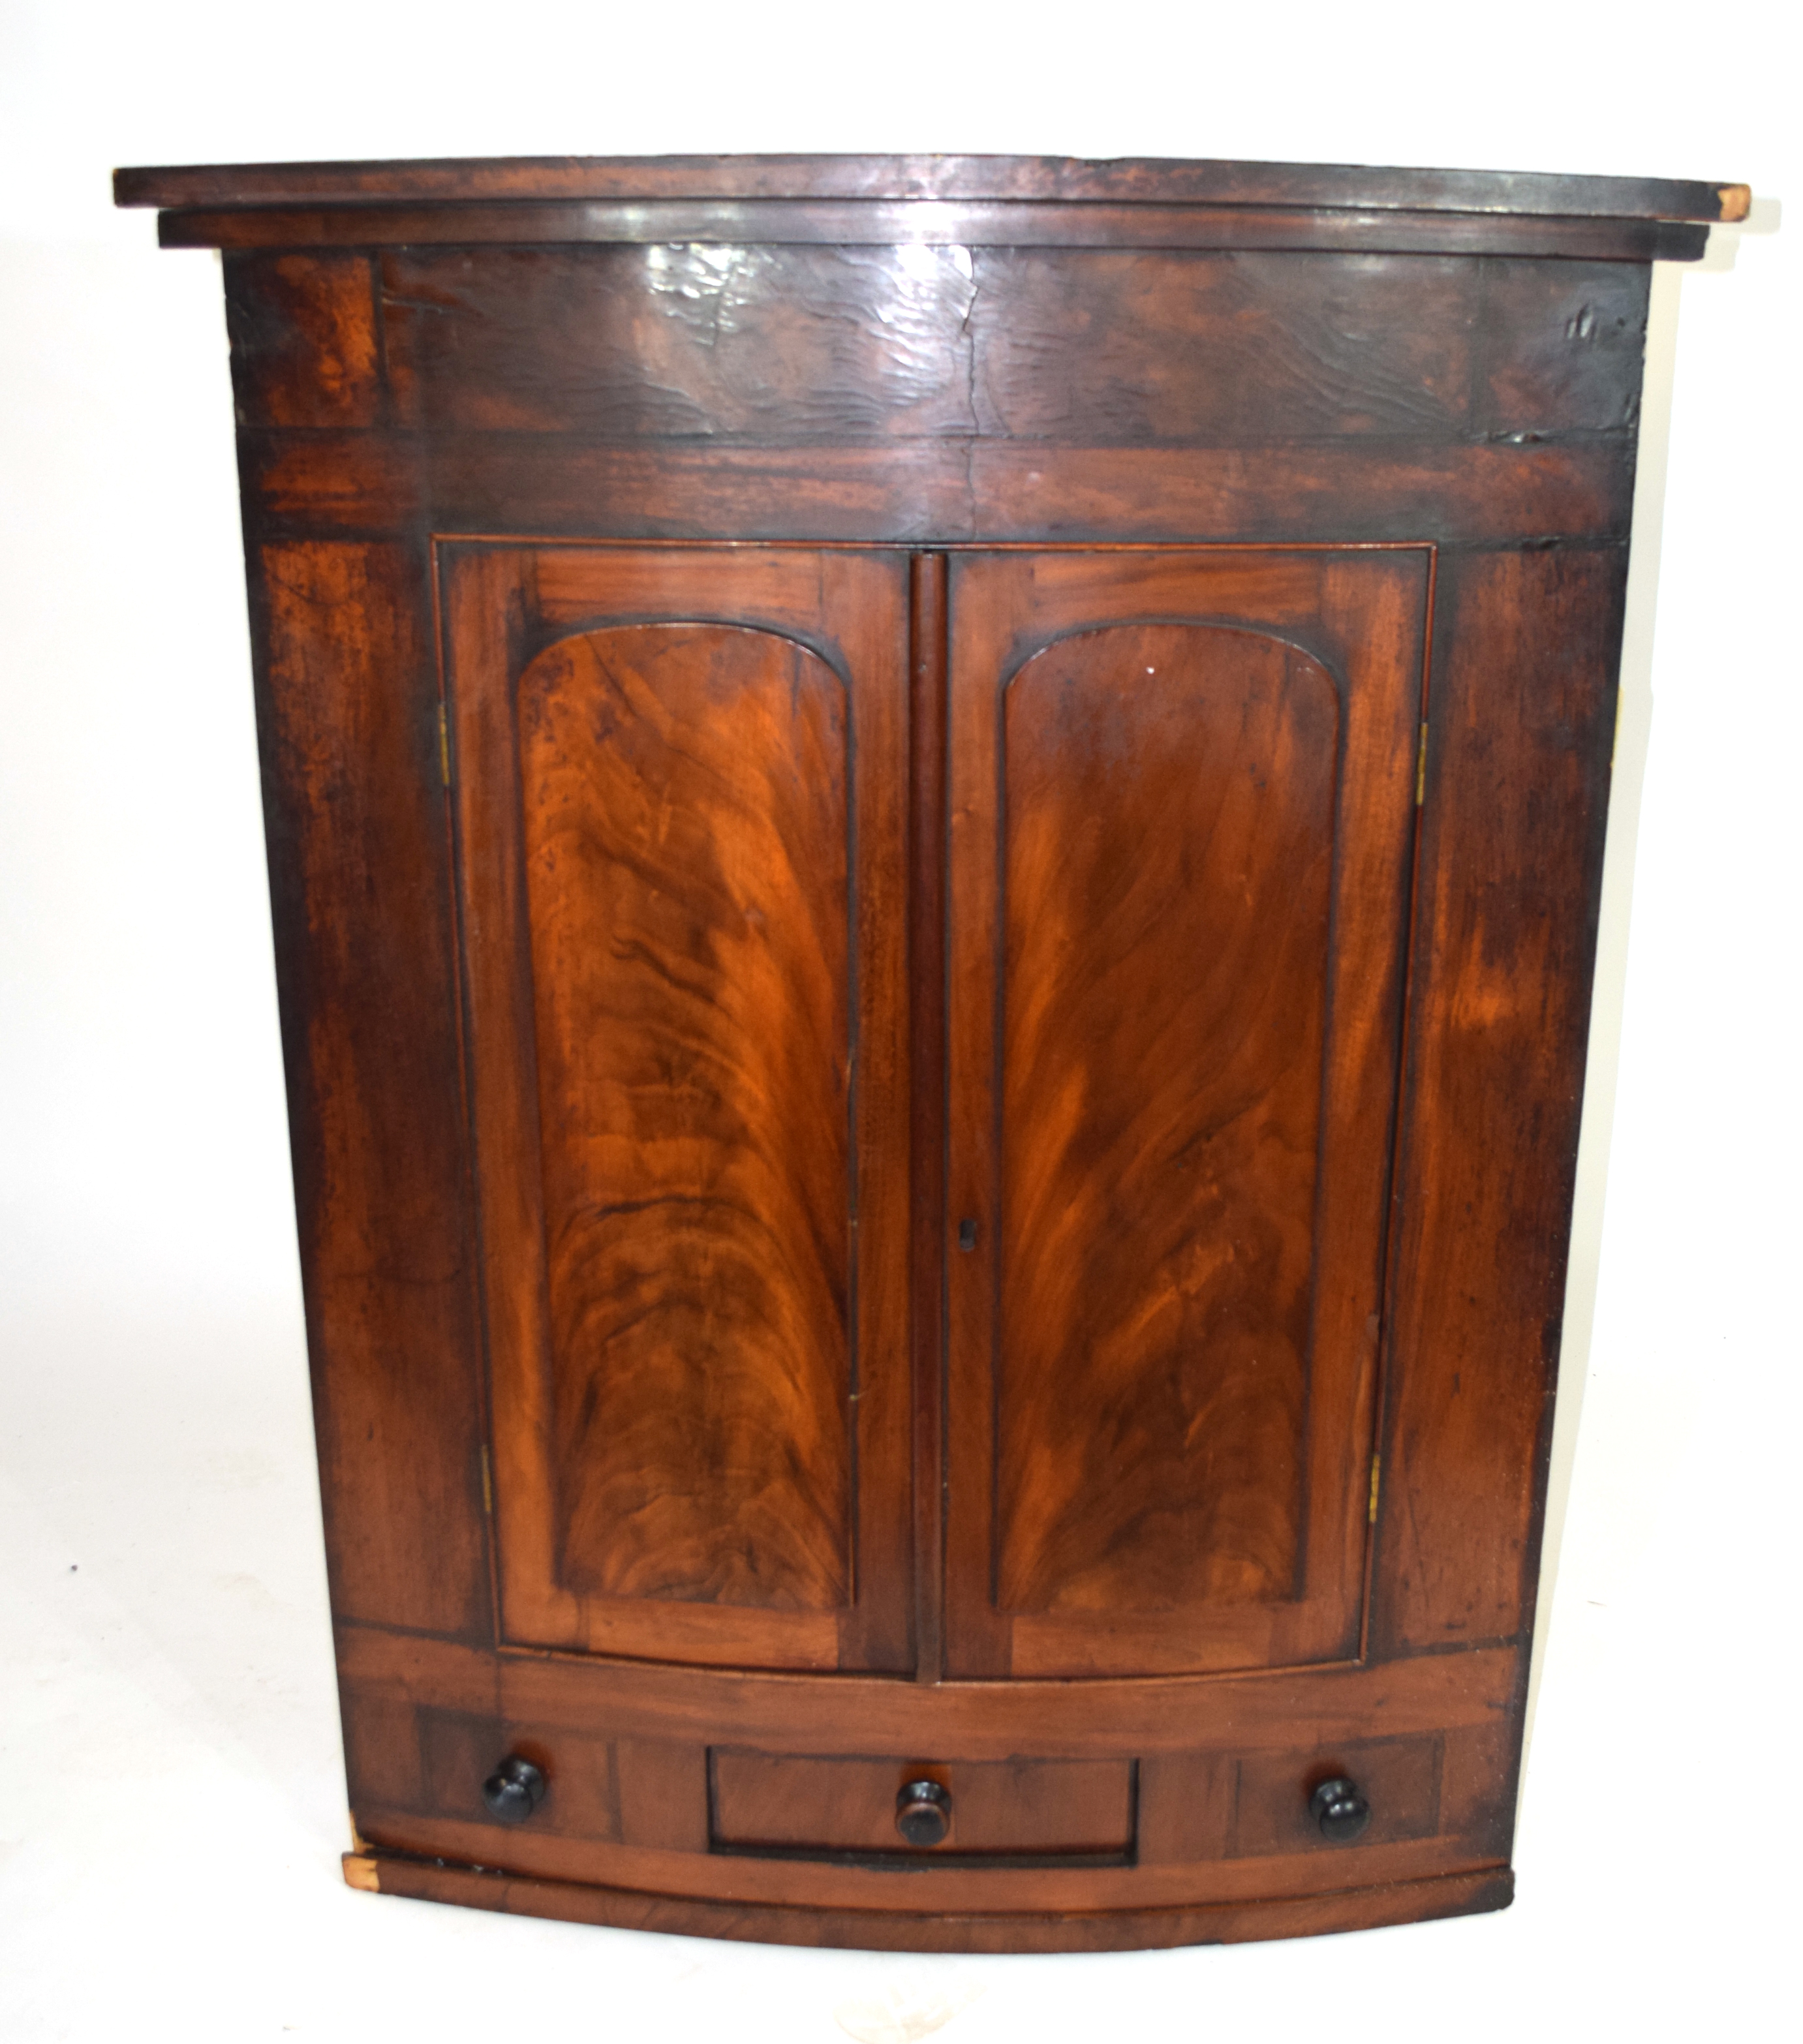 19th century mahogany corner cabinet of large proportions, the bow front body with two panelled